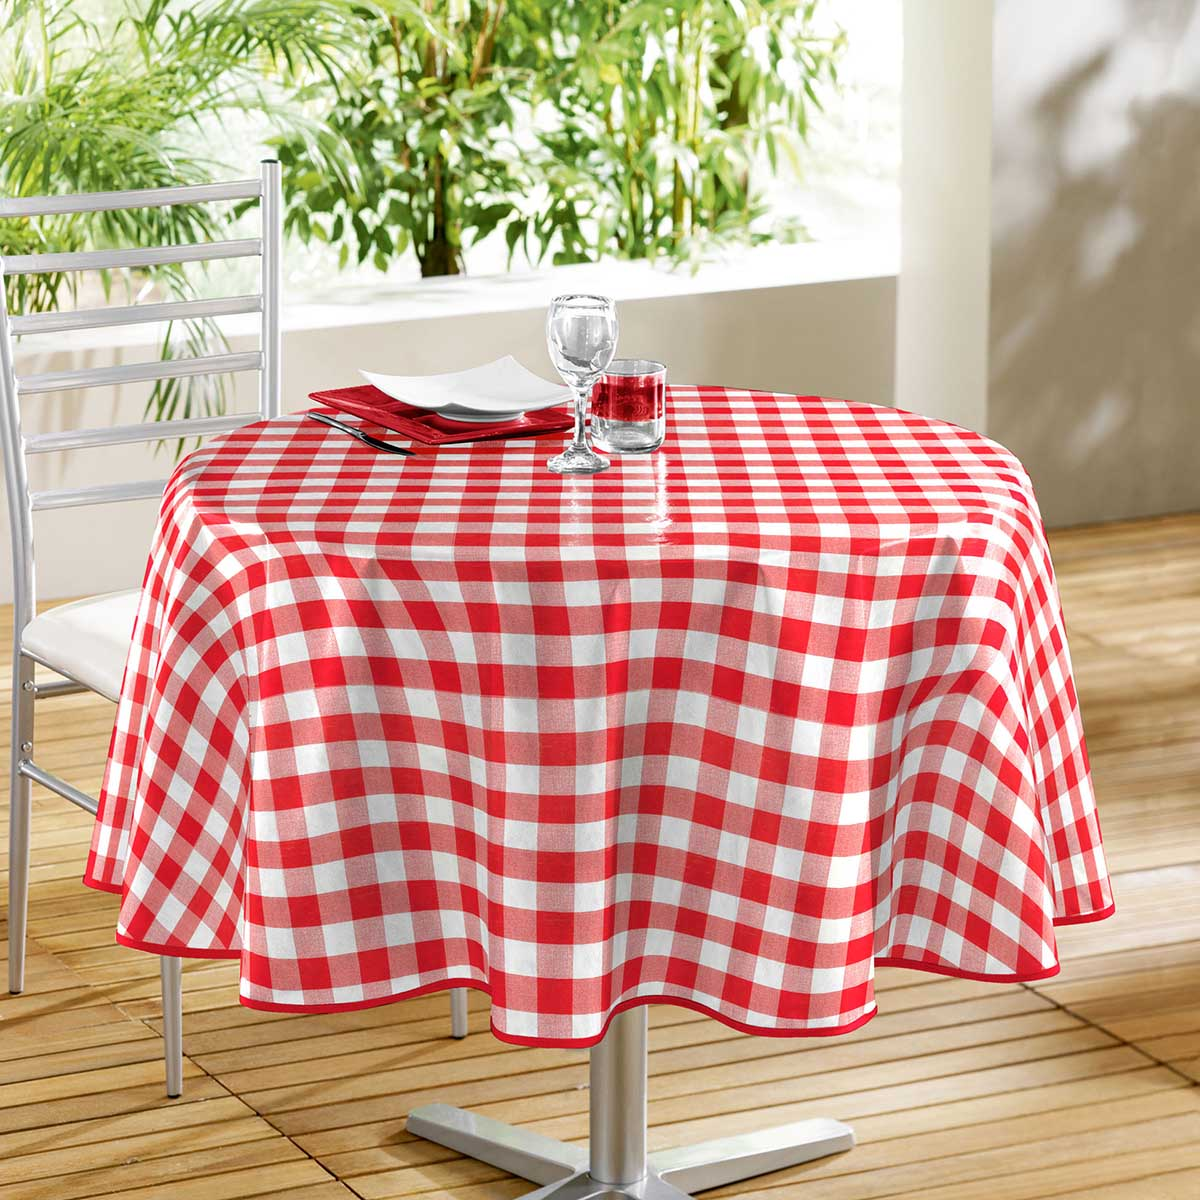 Nappe de table ronde 160cm vichy rouge en toile cir e - Table ronde rouge cuisine ...